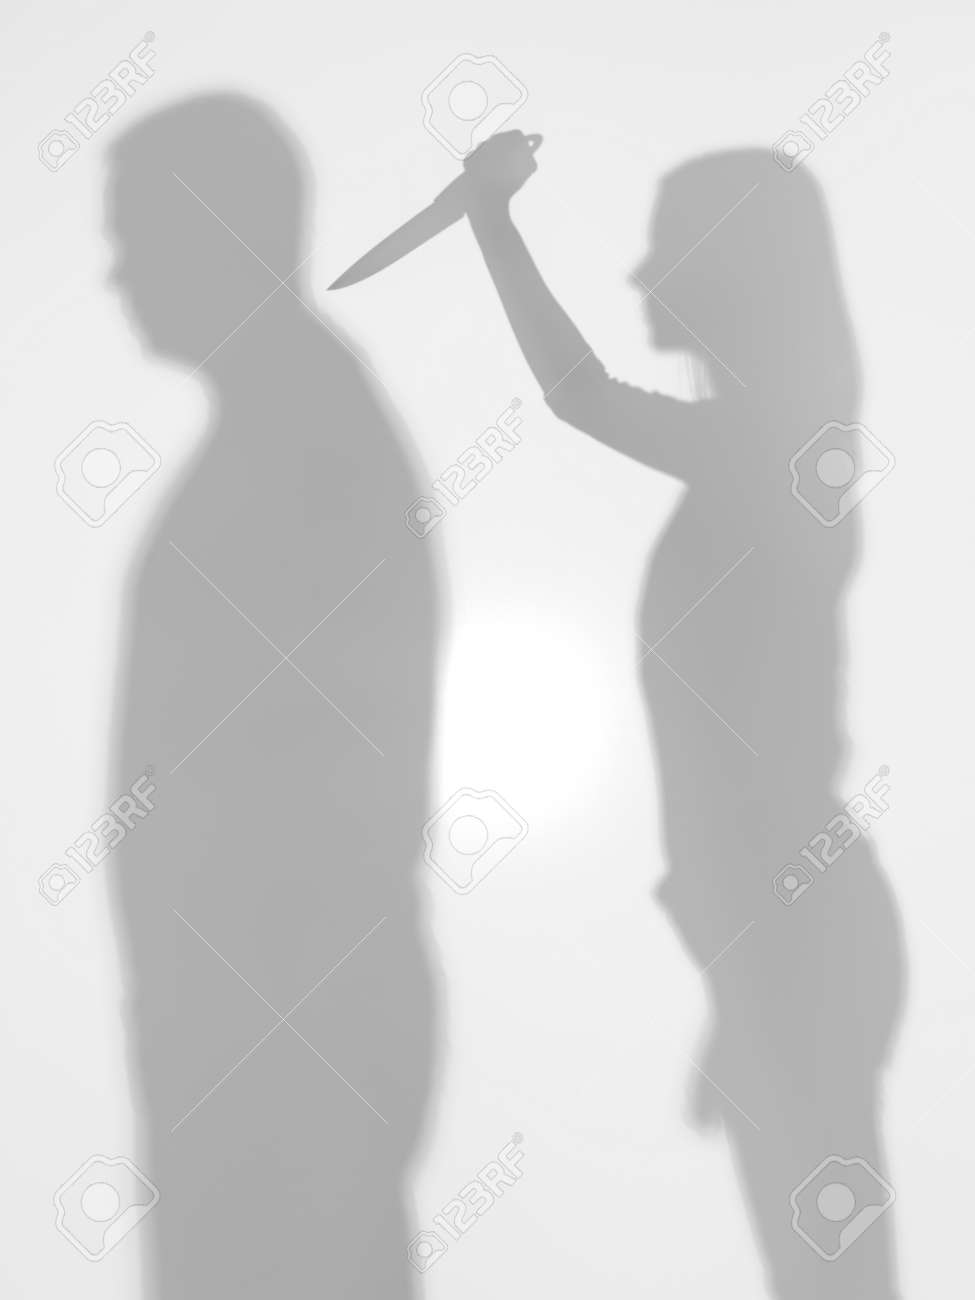 Stock Photo Body Silhouettes Standing From Profile, Woman Trying To Stab A  Man With A